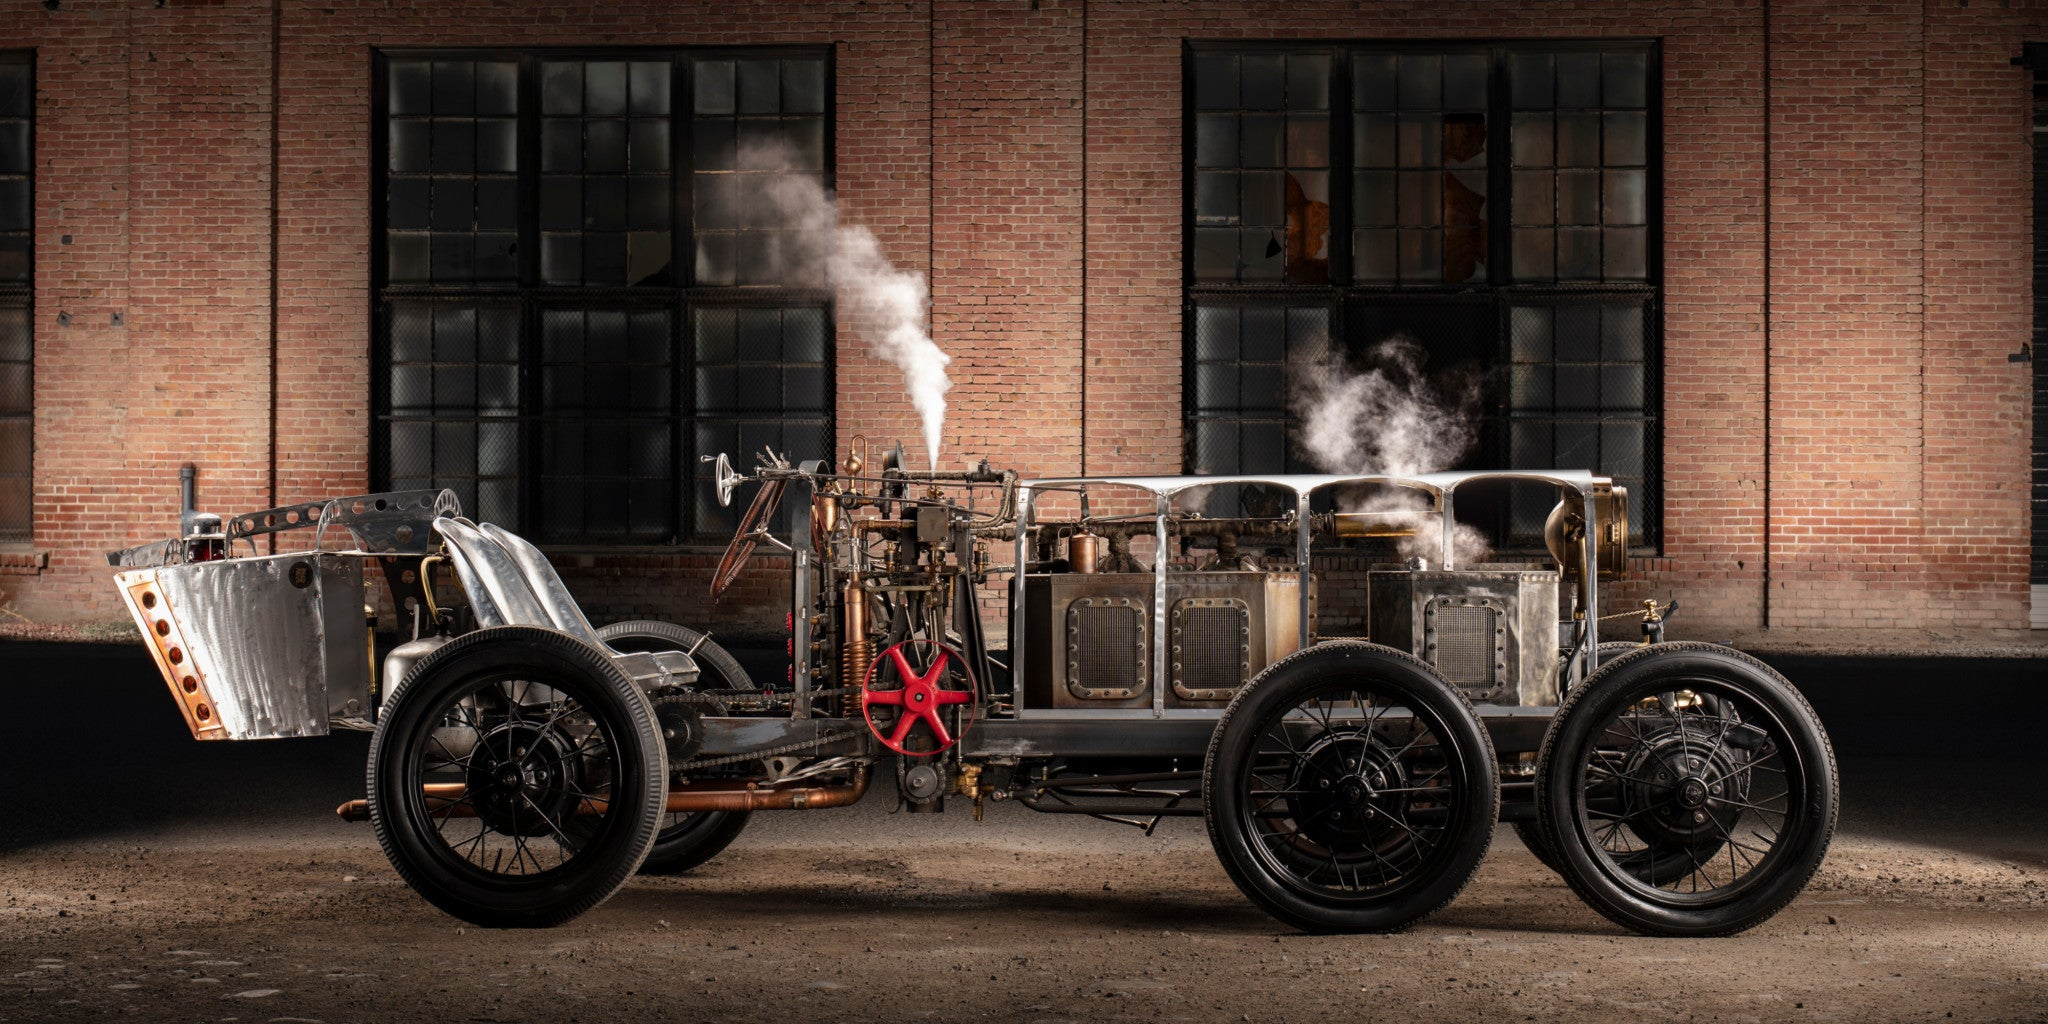 This Steam-Powered Roadster Will Make You Rethink Your Alternative Energy Strategy